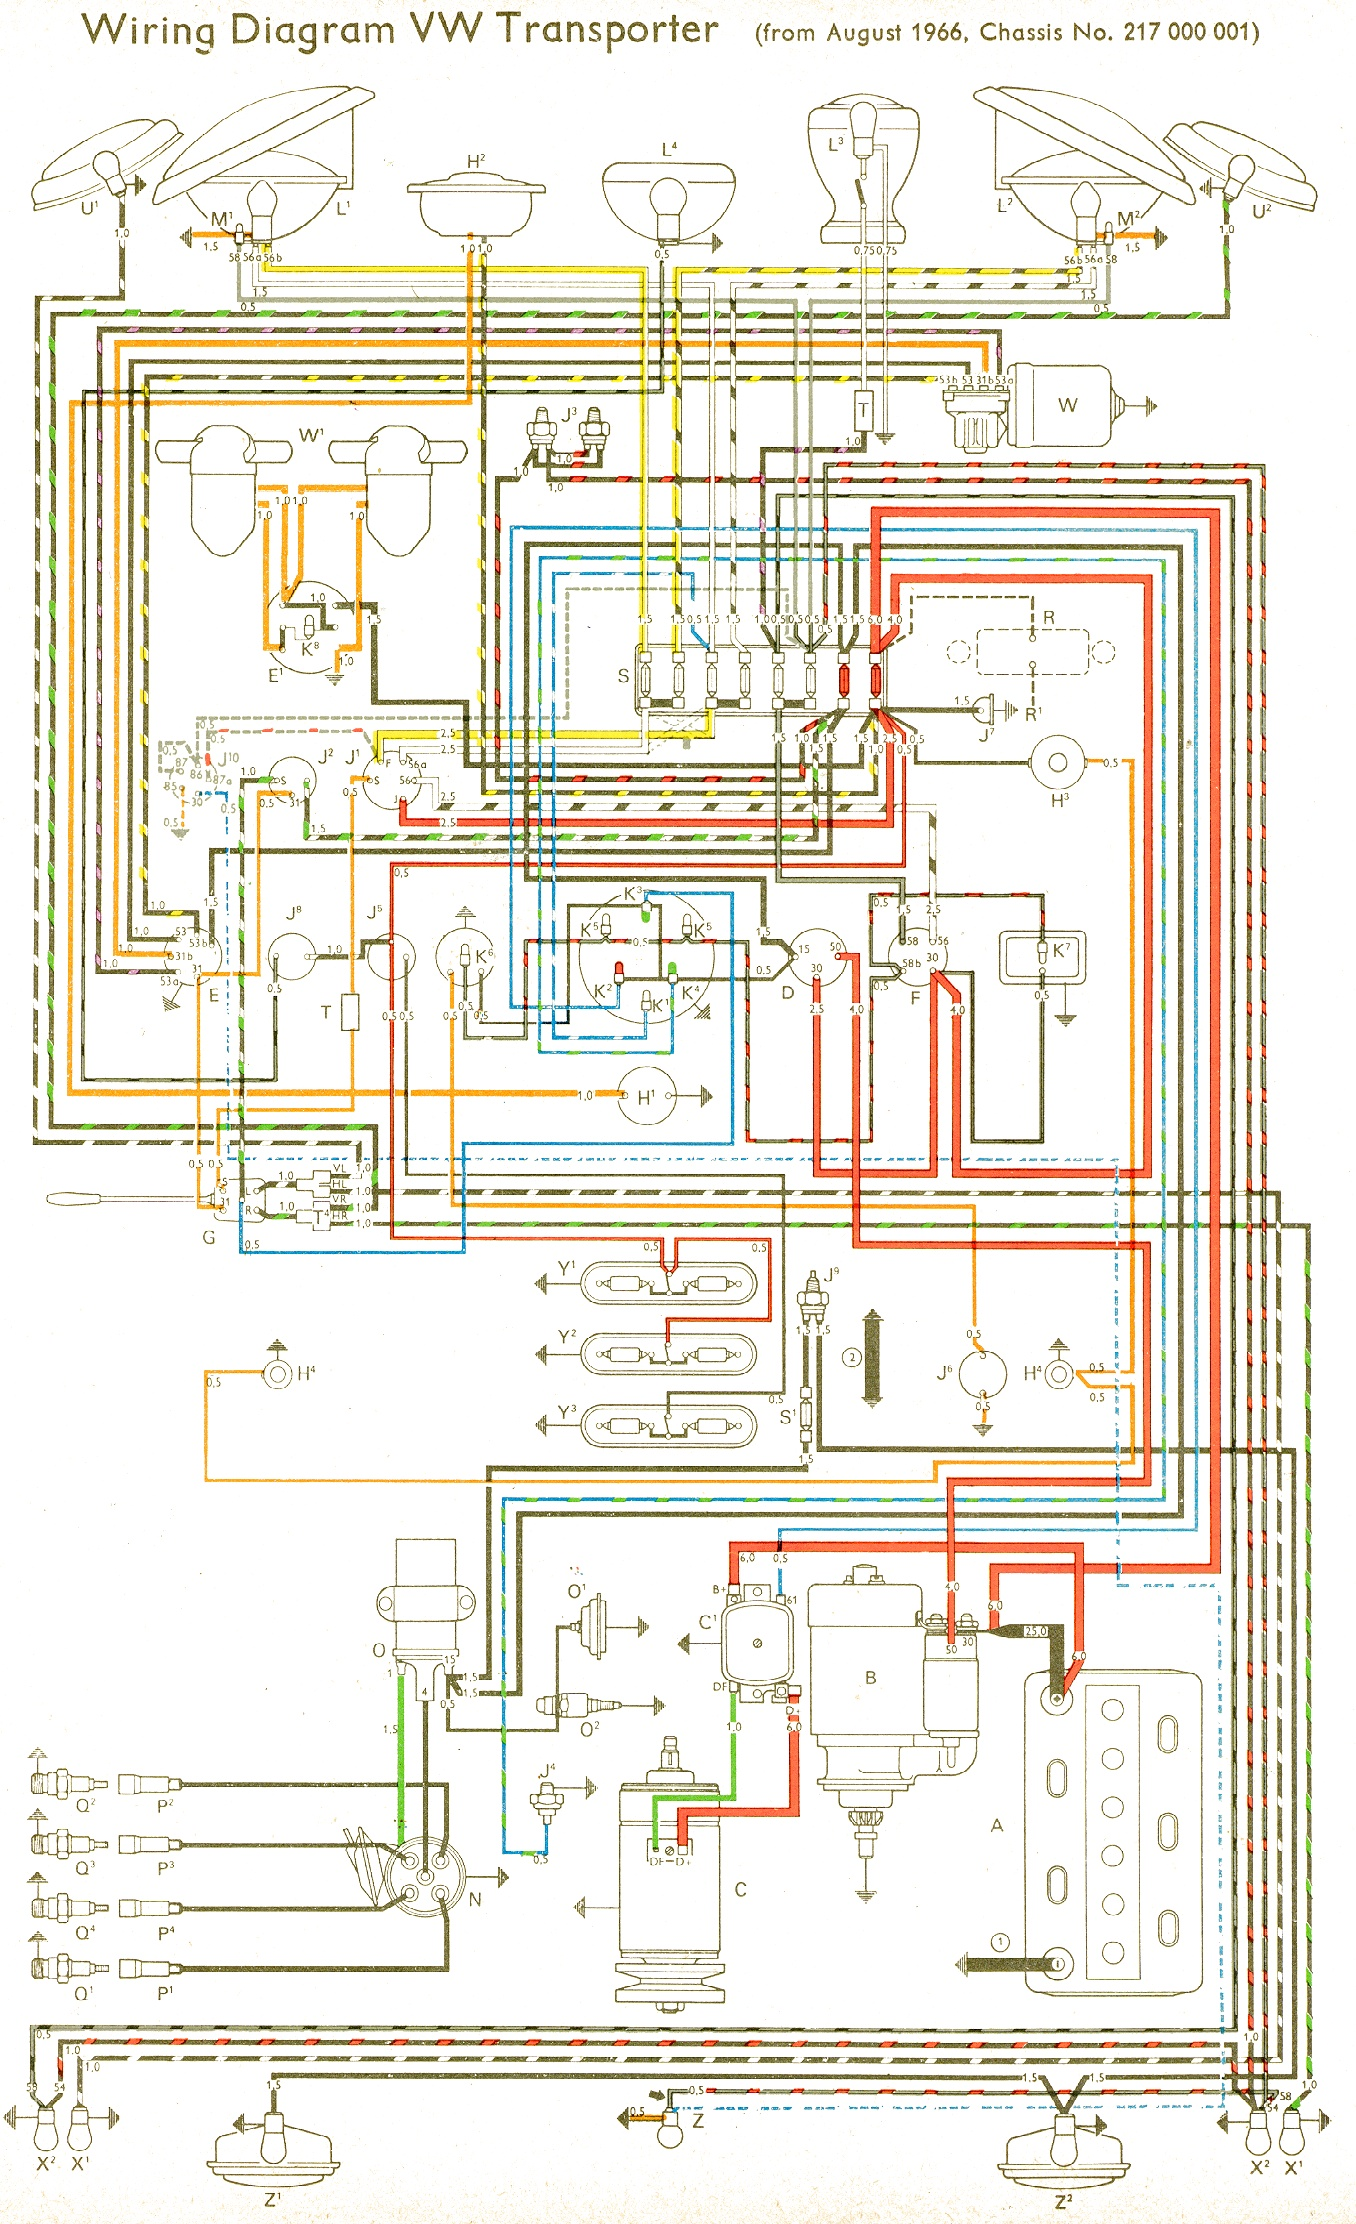 bus 66 vw wiring diagrams 1970 vw wiring diagram at mifinder.co